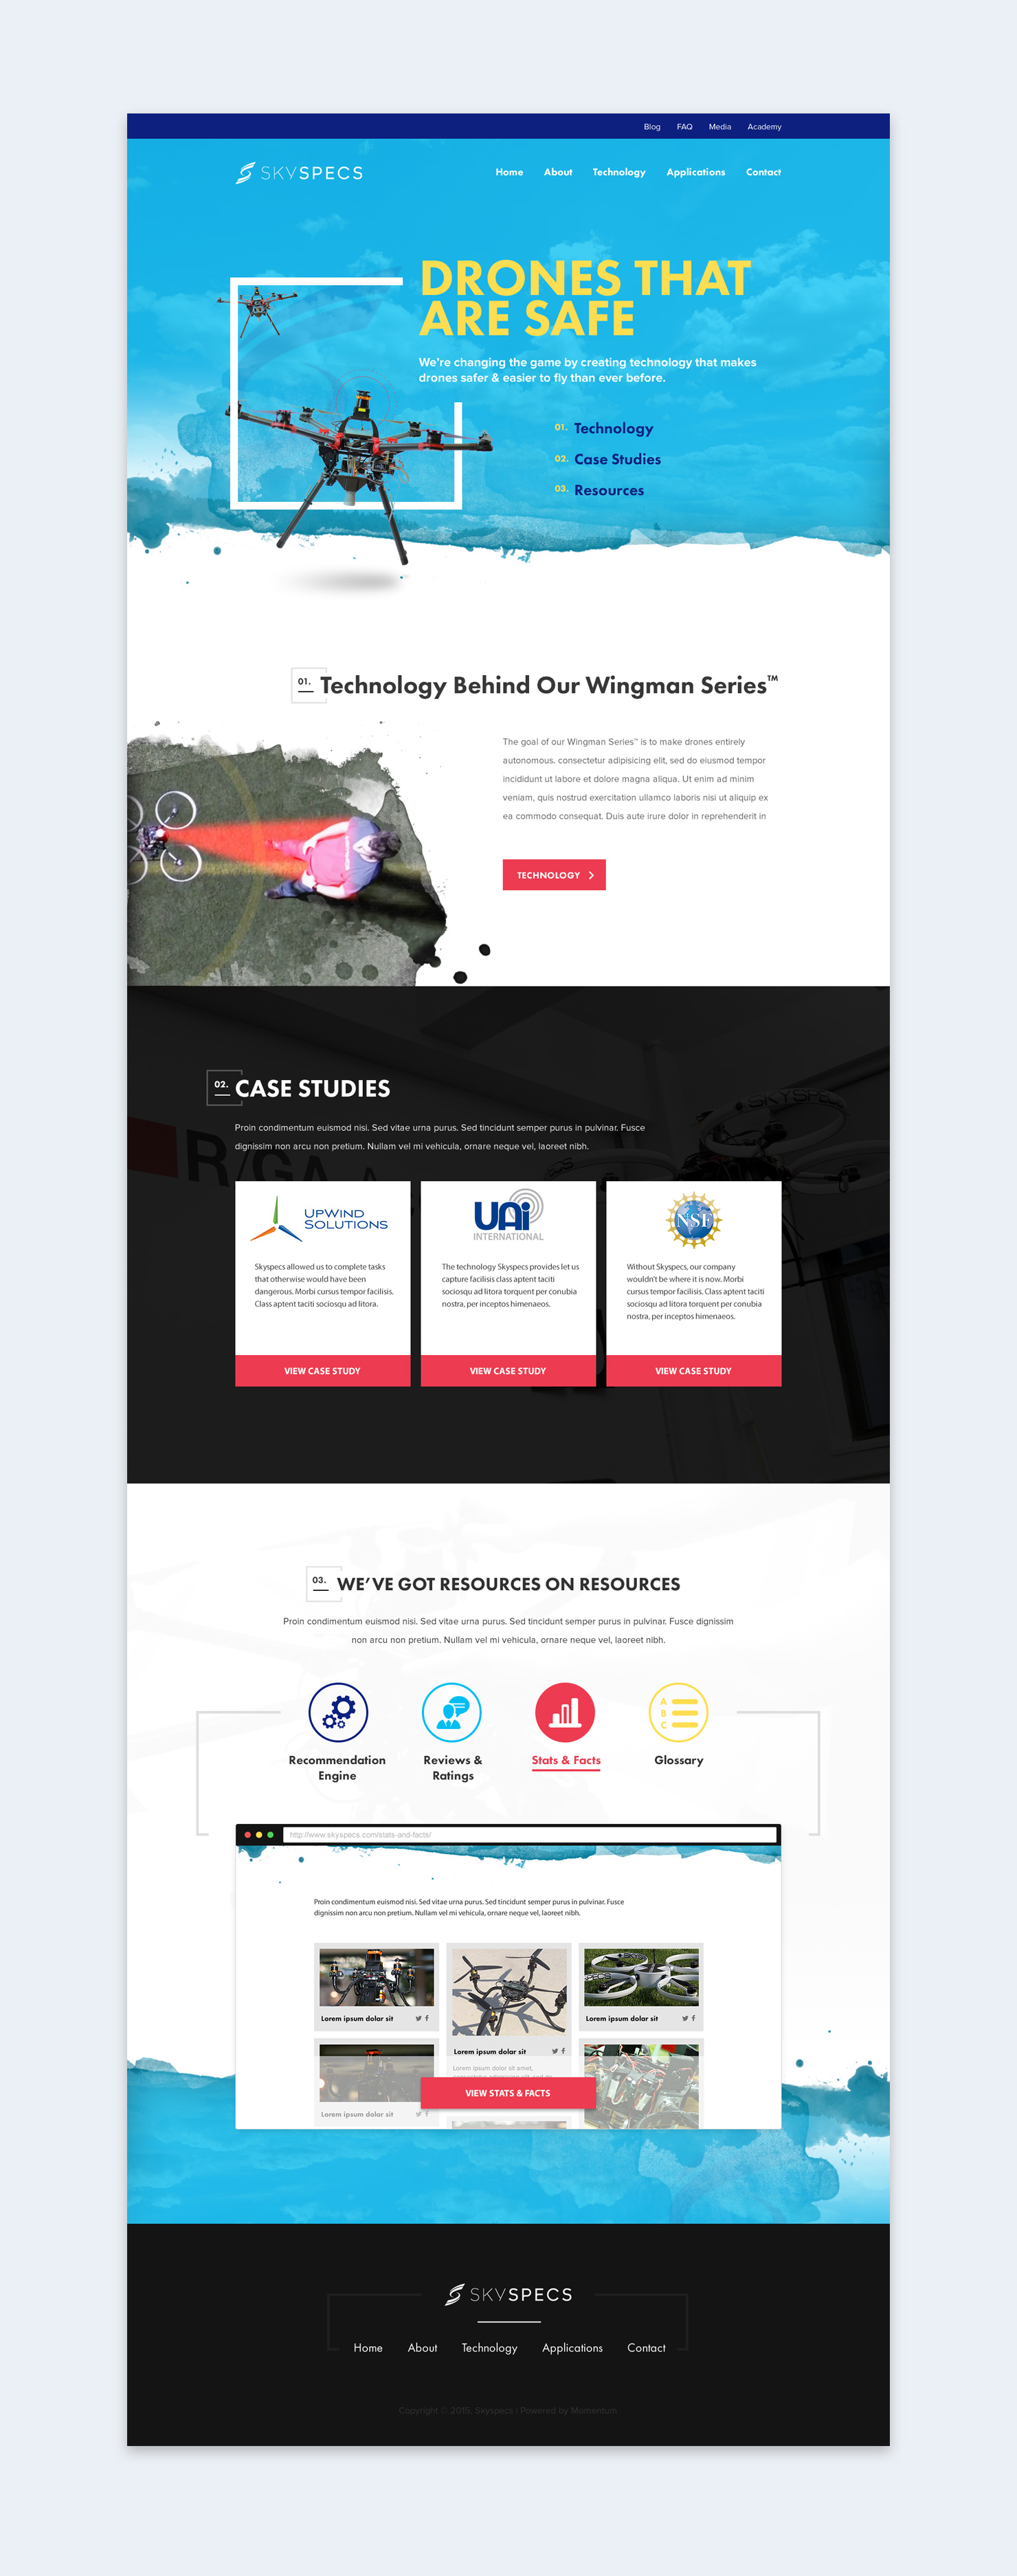 Skyspecs Home Page Design